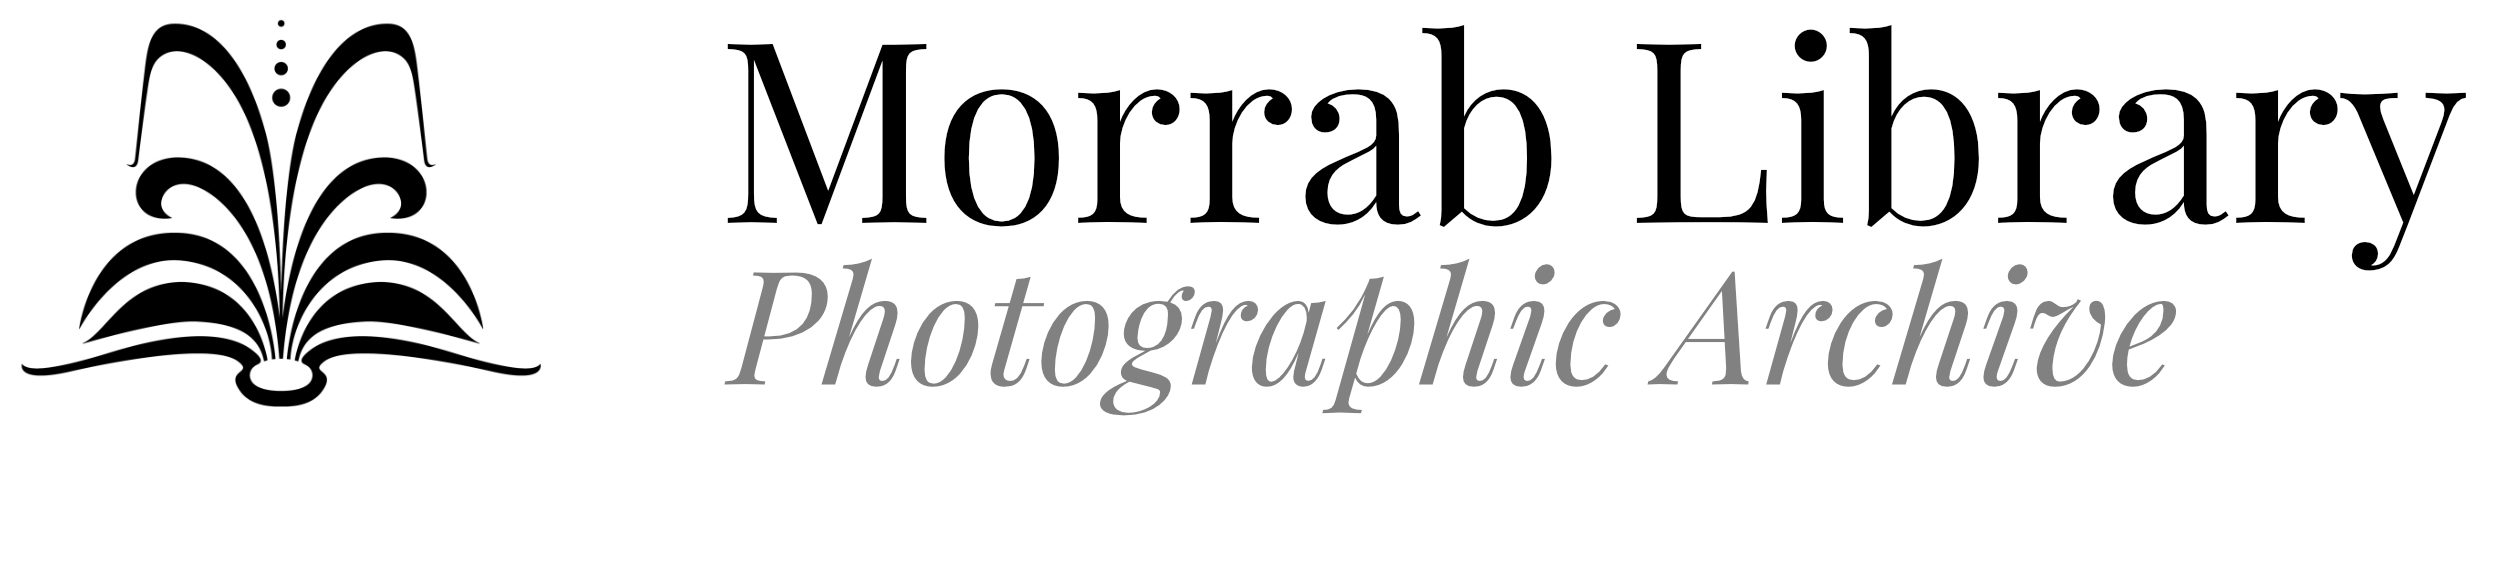 Morrab Library Photographic Archive